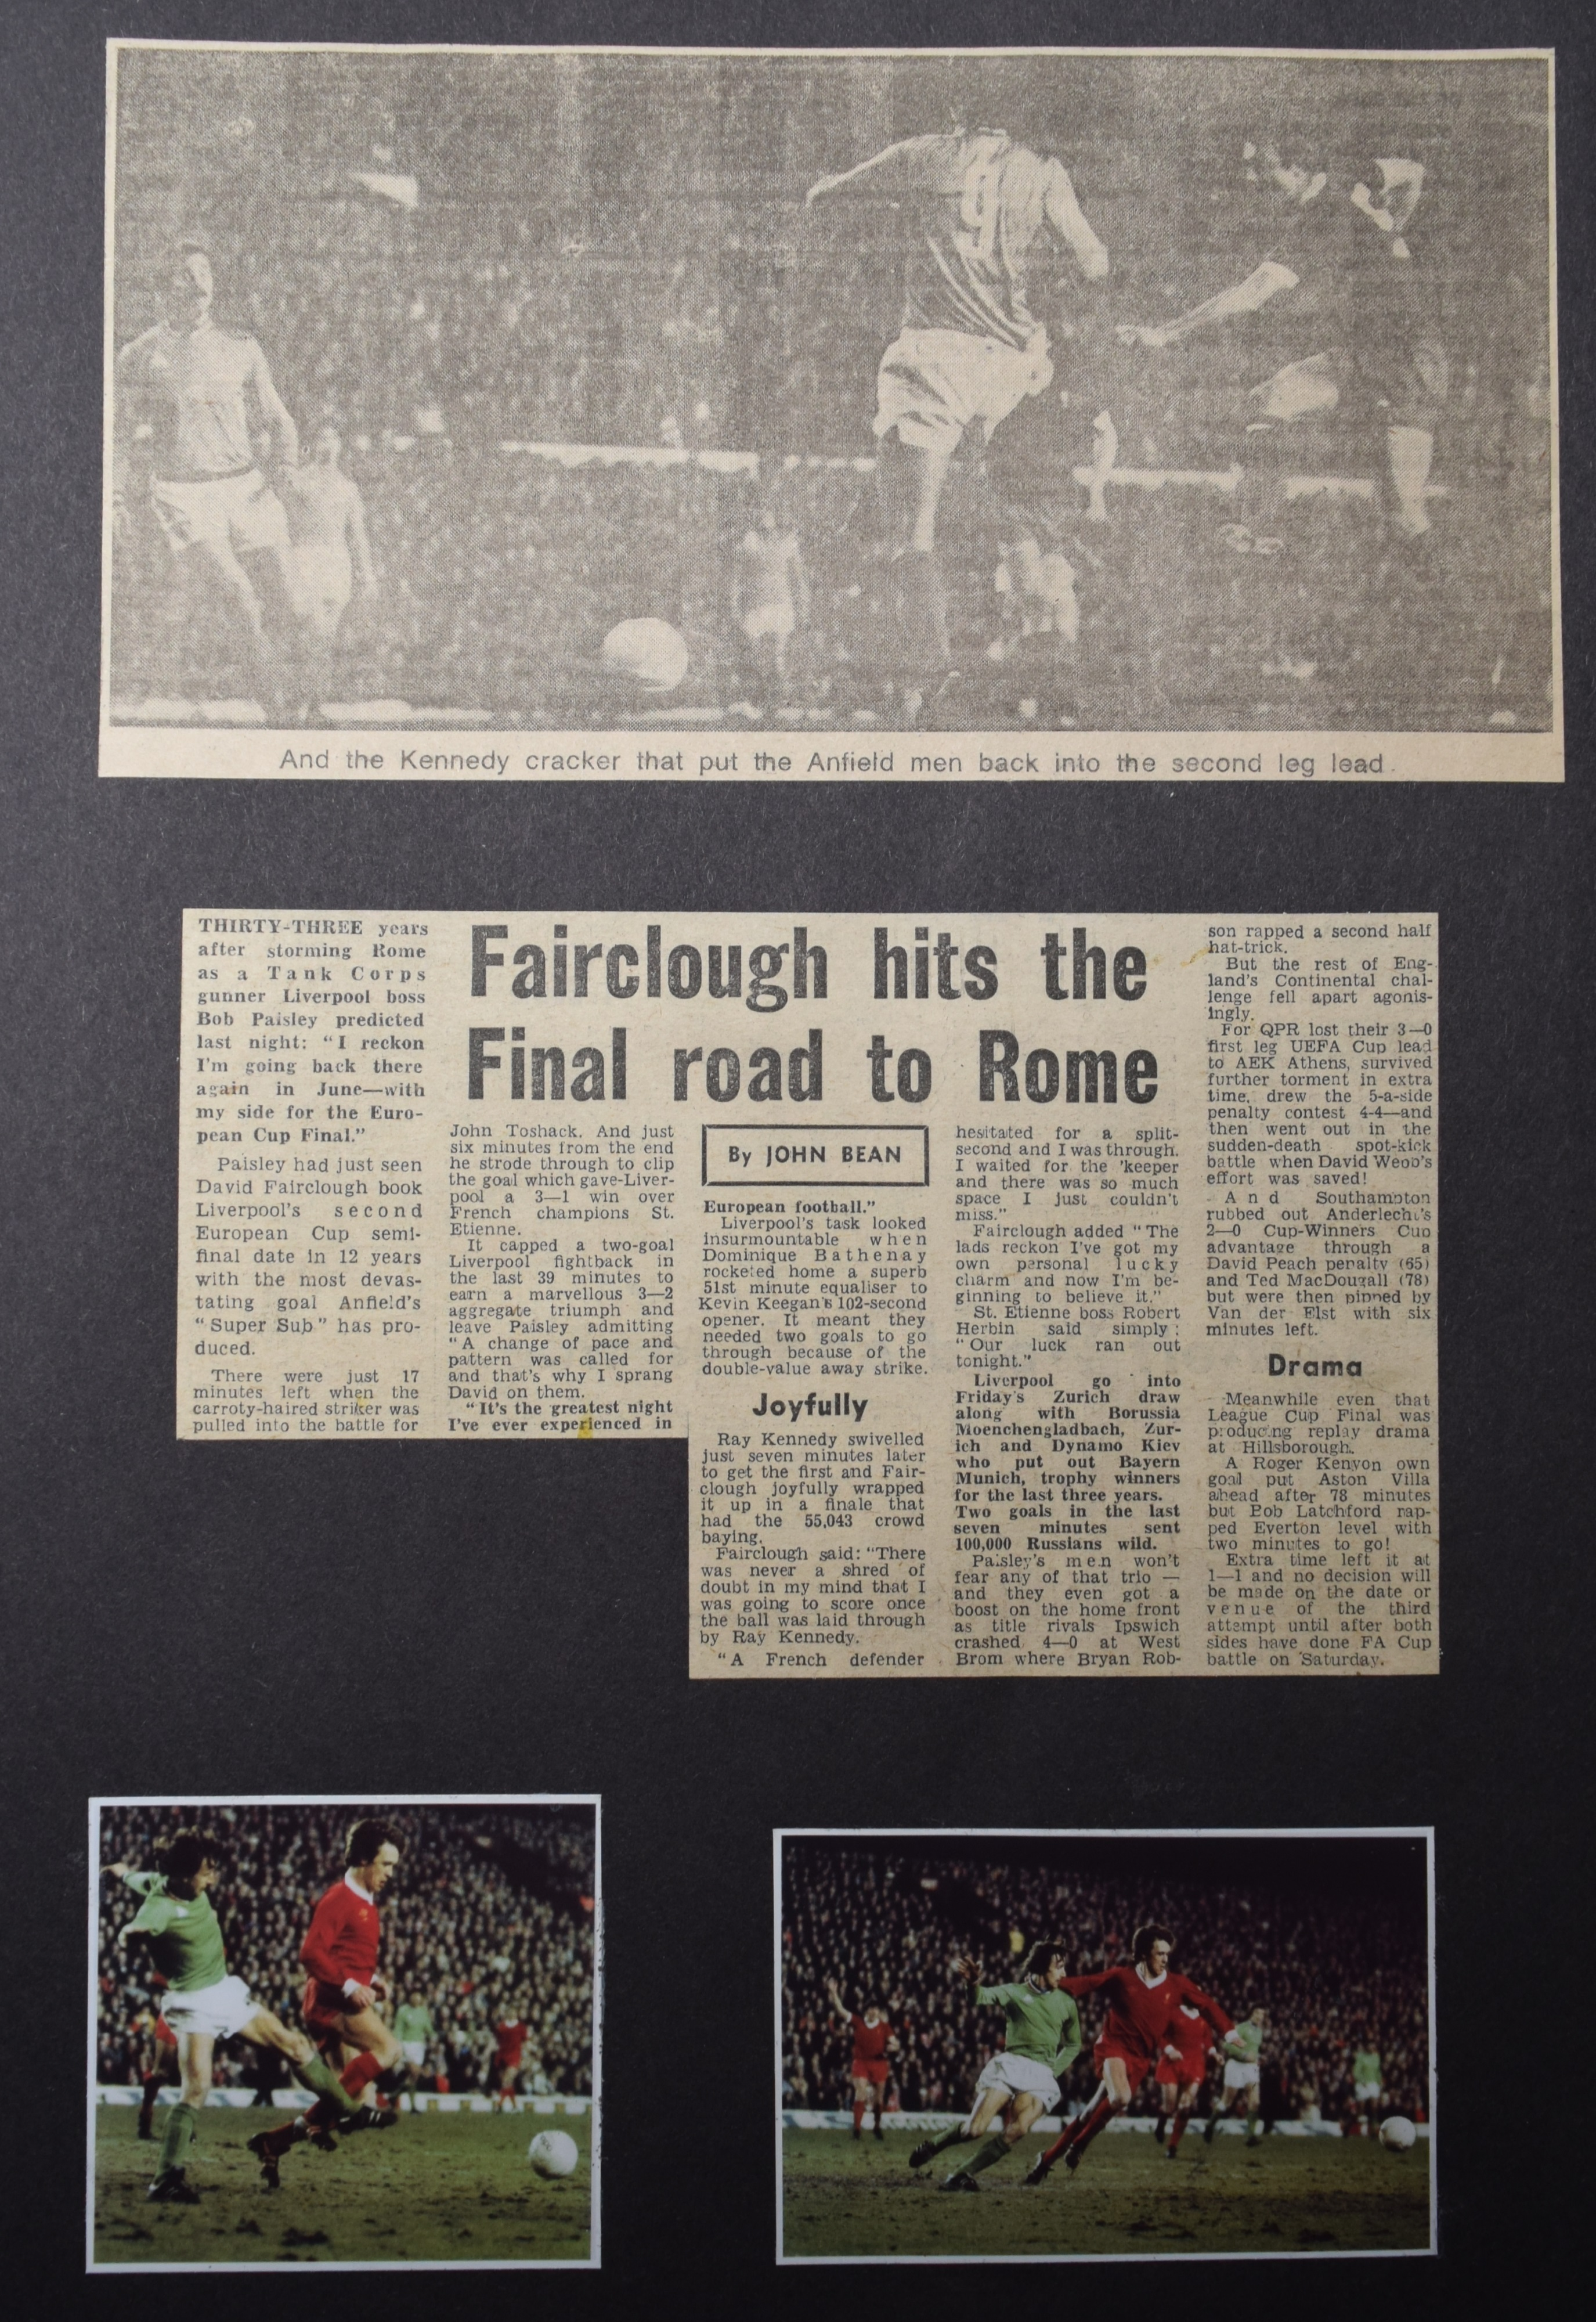 Fairclough hits the final road to Rome